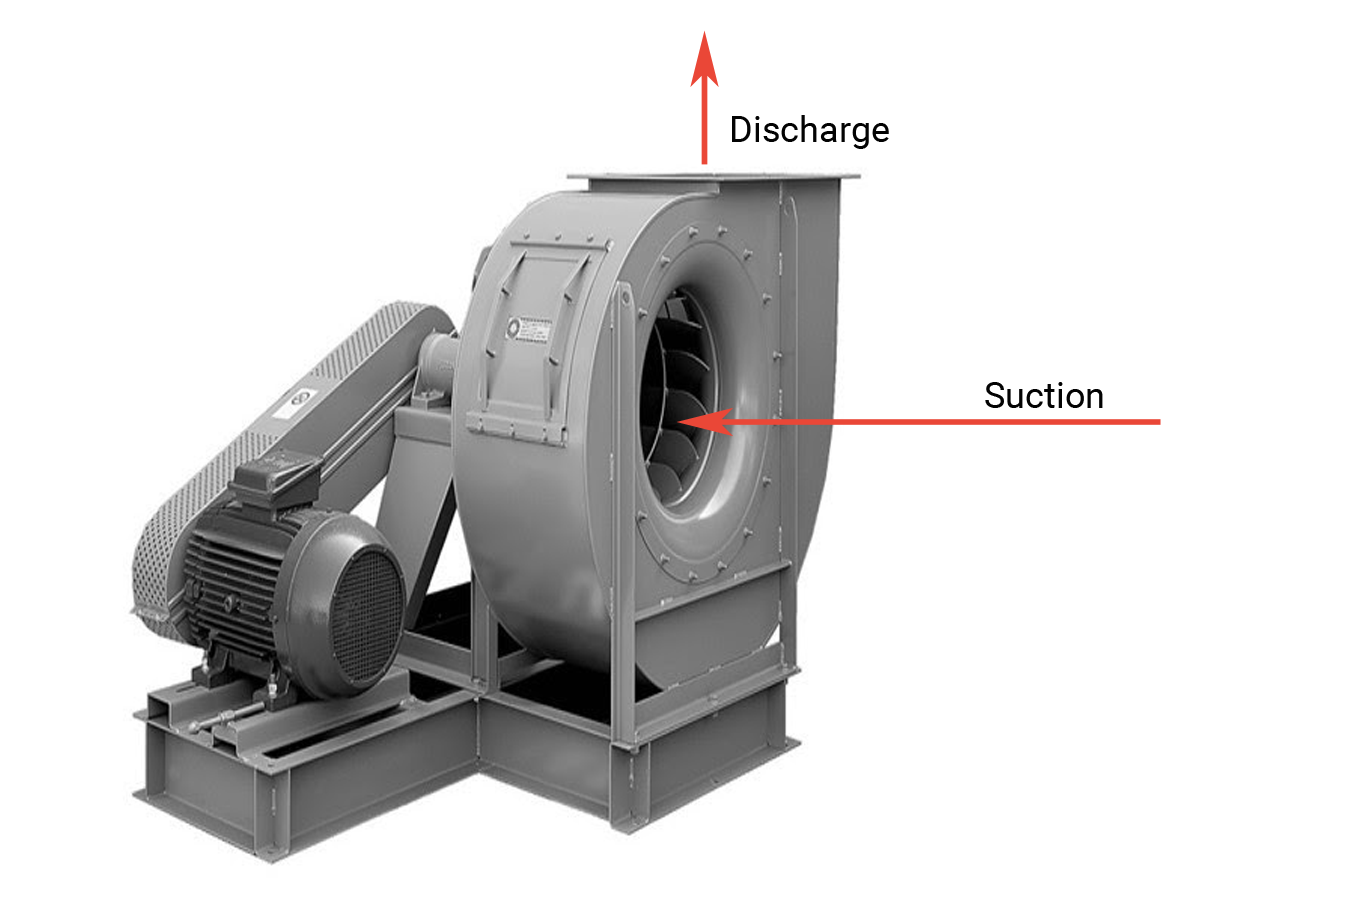 Figure 1: Direction of the air/gas flow in a centrifugal fan.